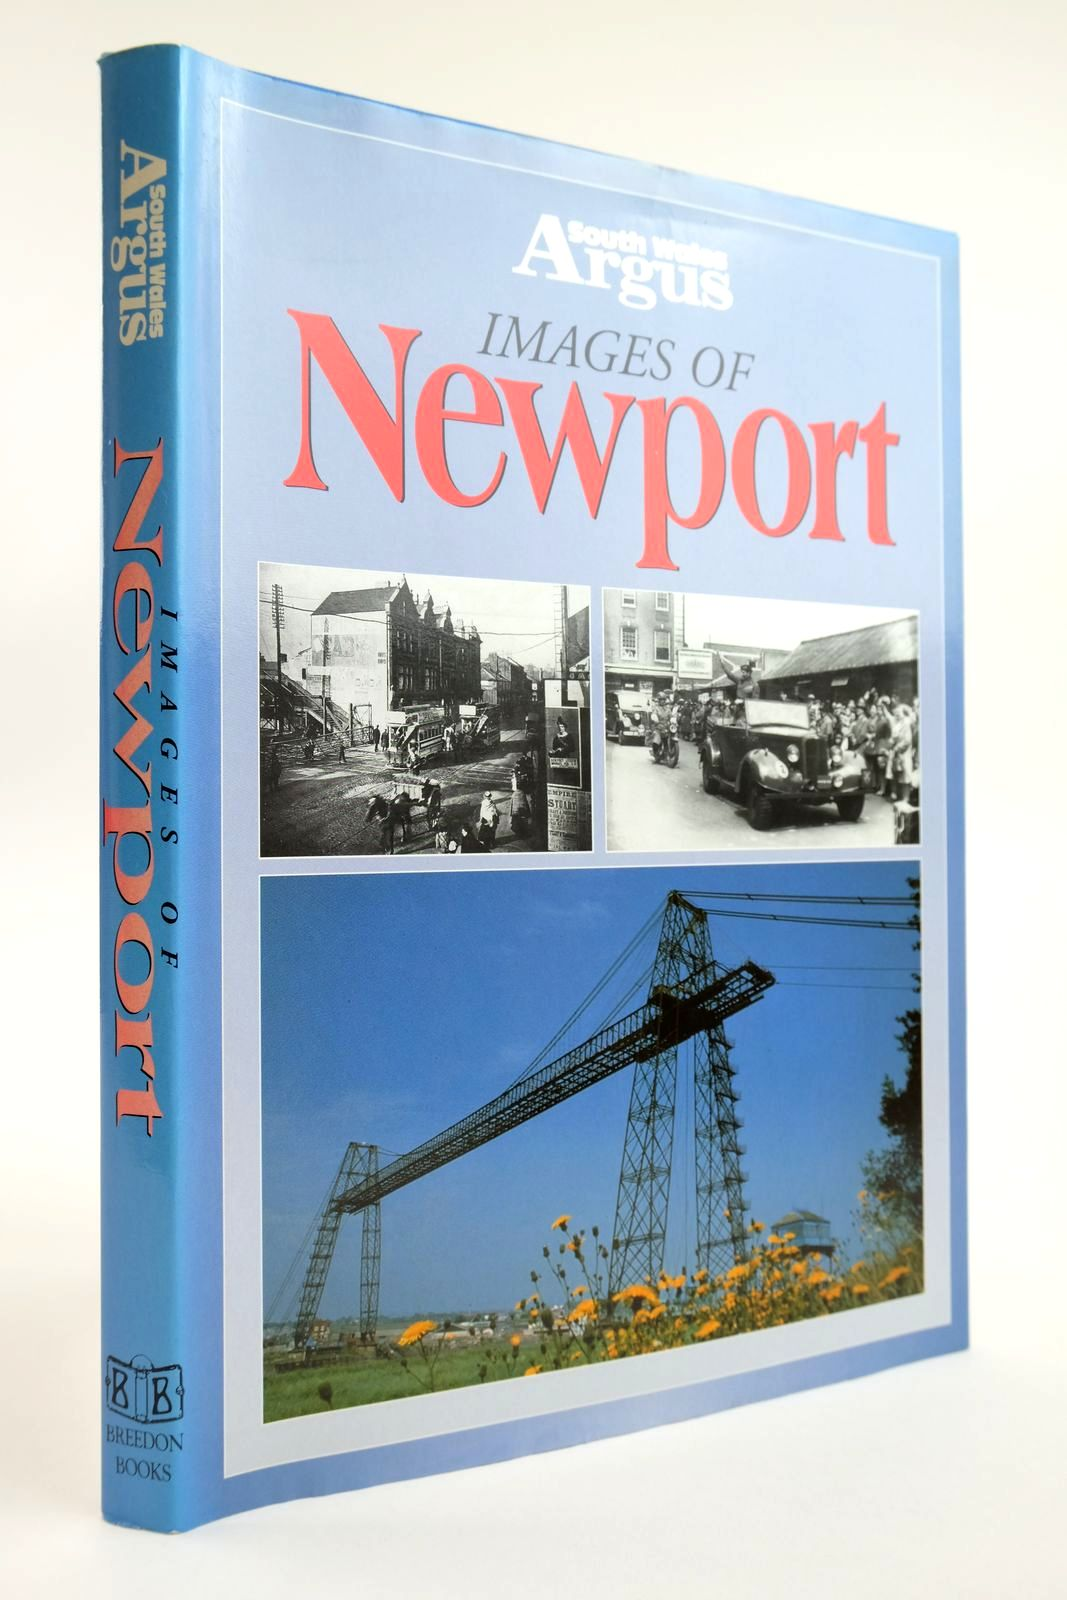 Photo of SOUTH WALES ARGUS IMAGES OF NEWPORT published by Breedon Books Publishing Co. (STOCK CODE: 2133450)  for sale by Stella & Rose's Books